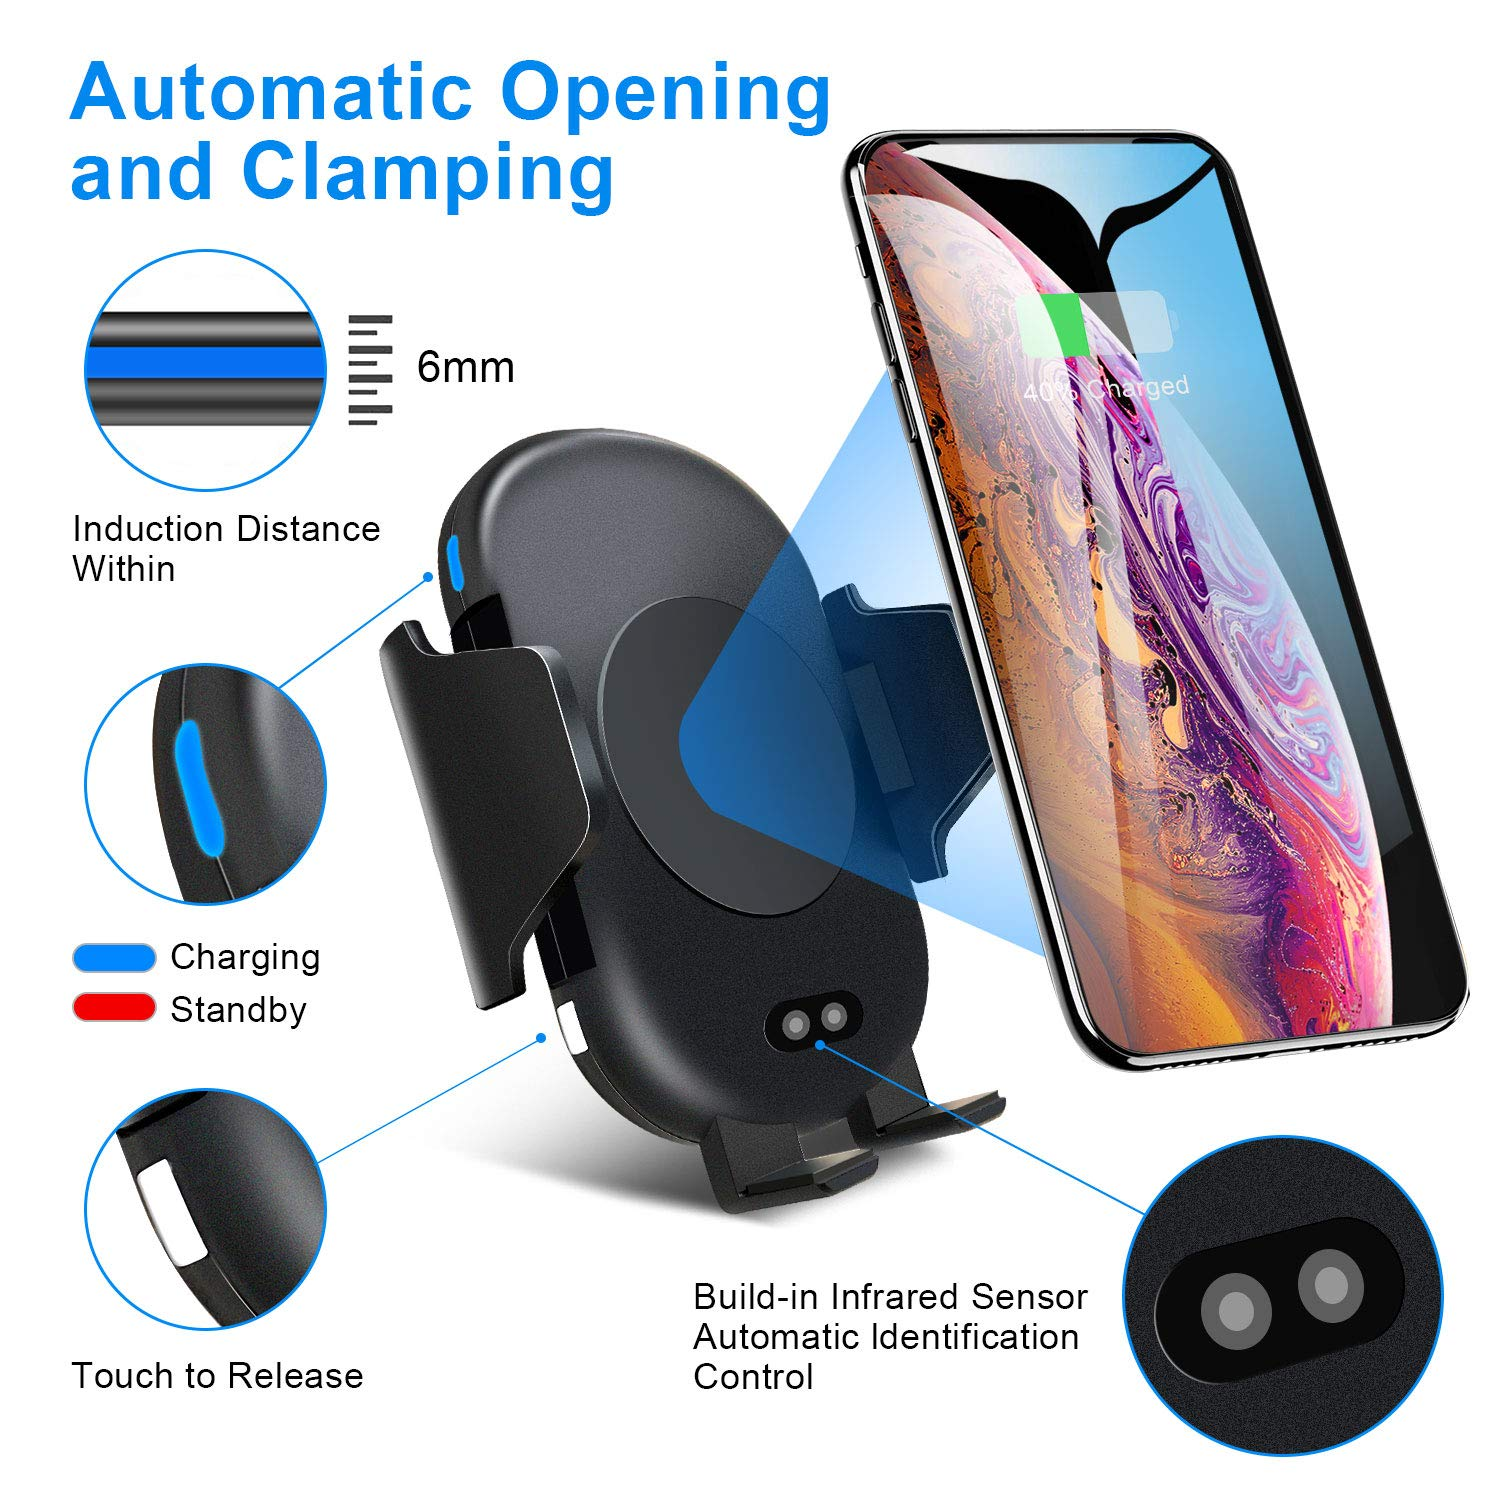 Samsung S10 S9 S8 Note9 Windshield Dashboard Air Vent Phone Mount Compatible with iPhone X Xs Max Xr 8 Wireless Car Charger Mount Infrared Automatic Clamping Qi 10W 7.5W Fast Charger car Mount